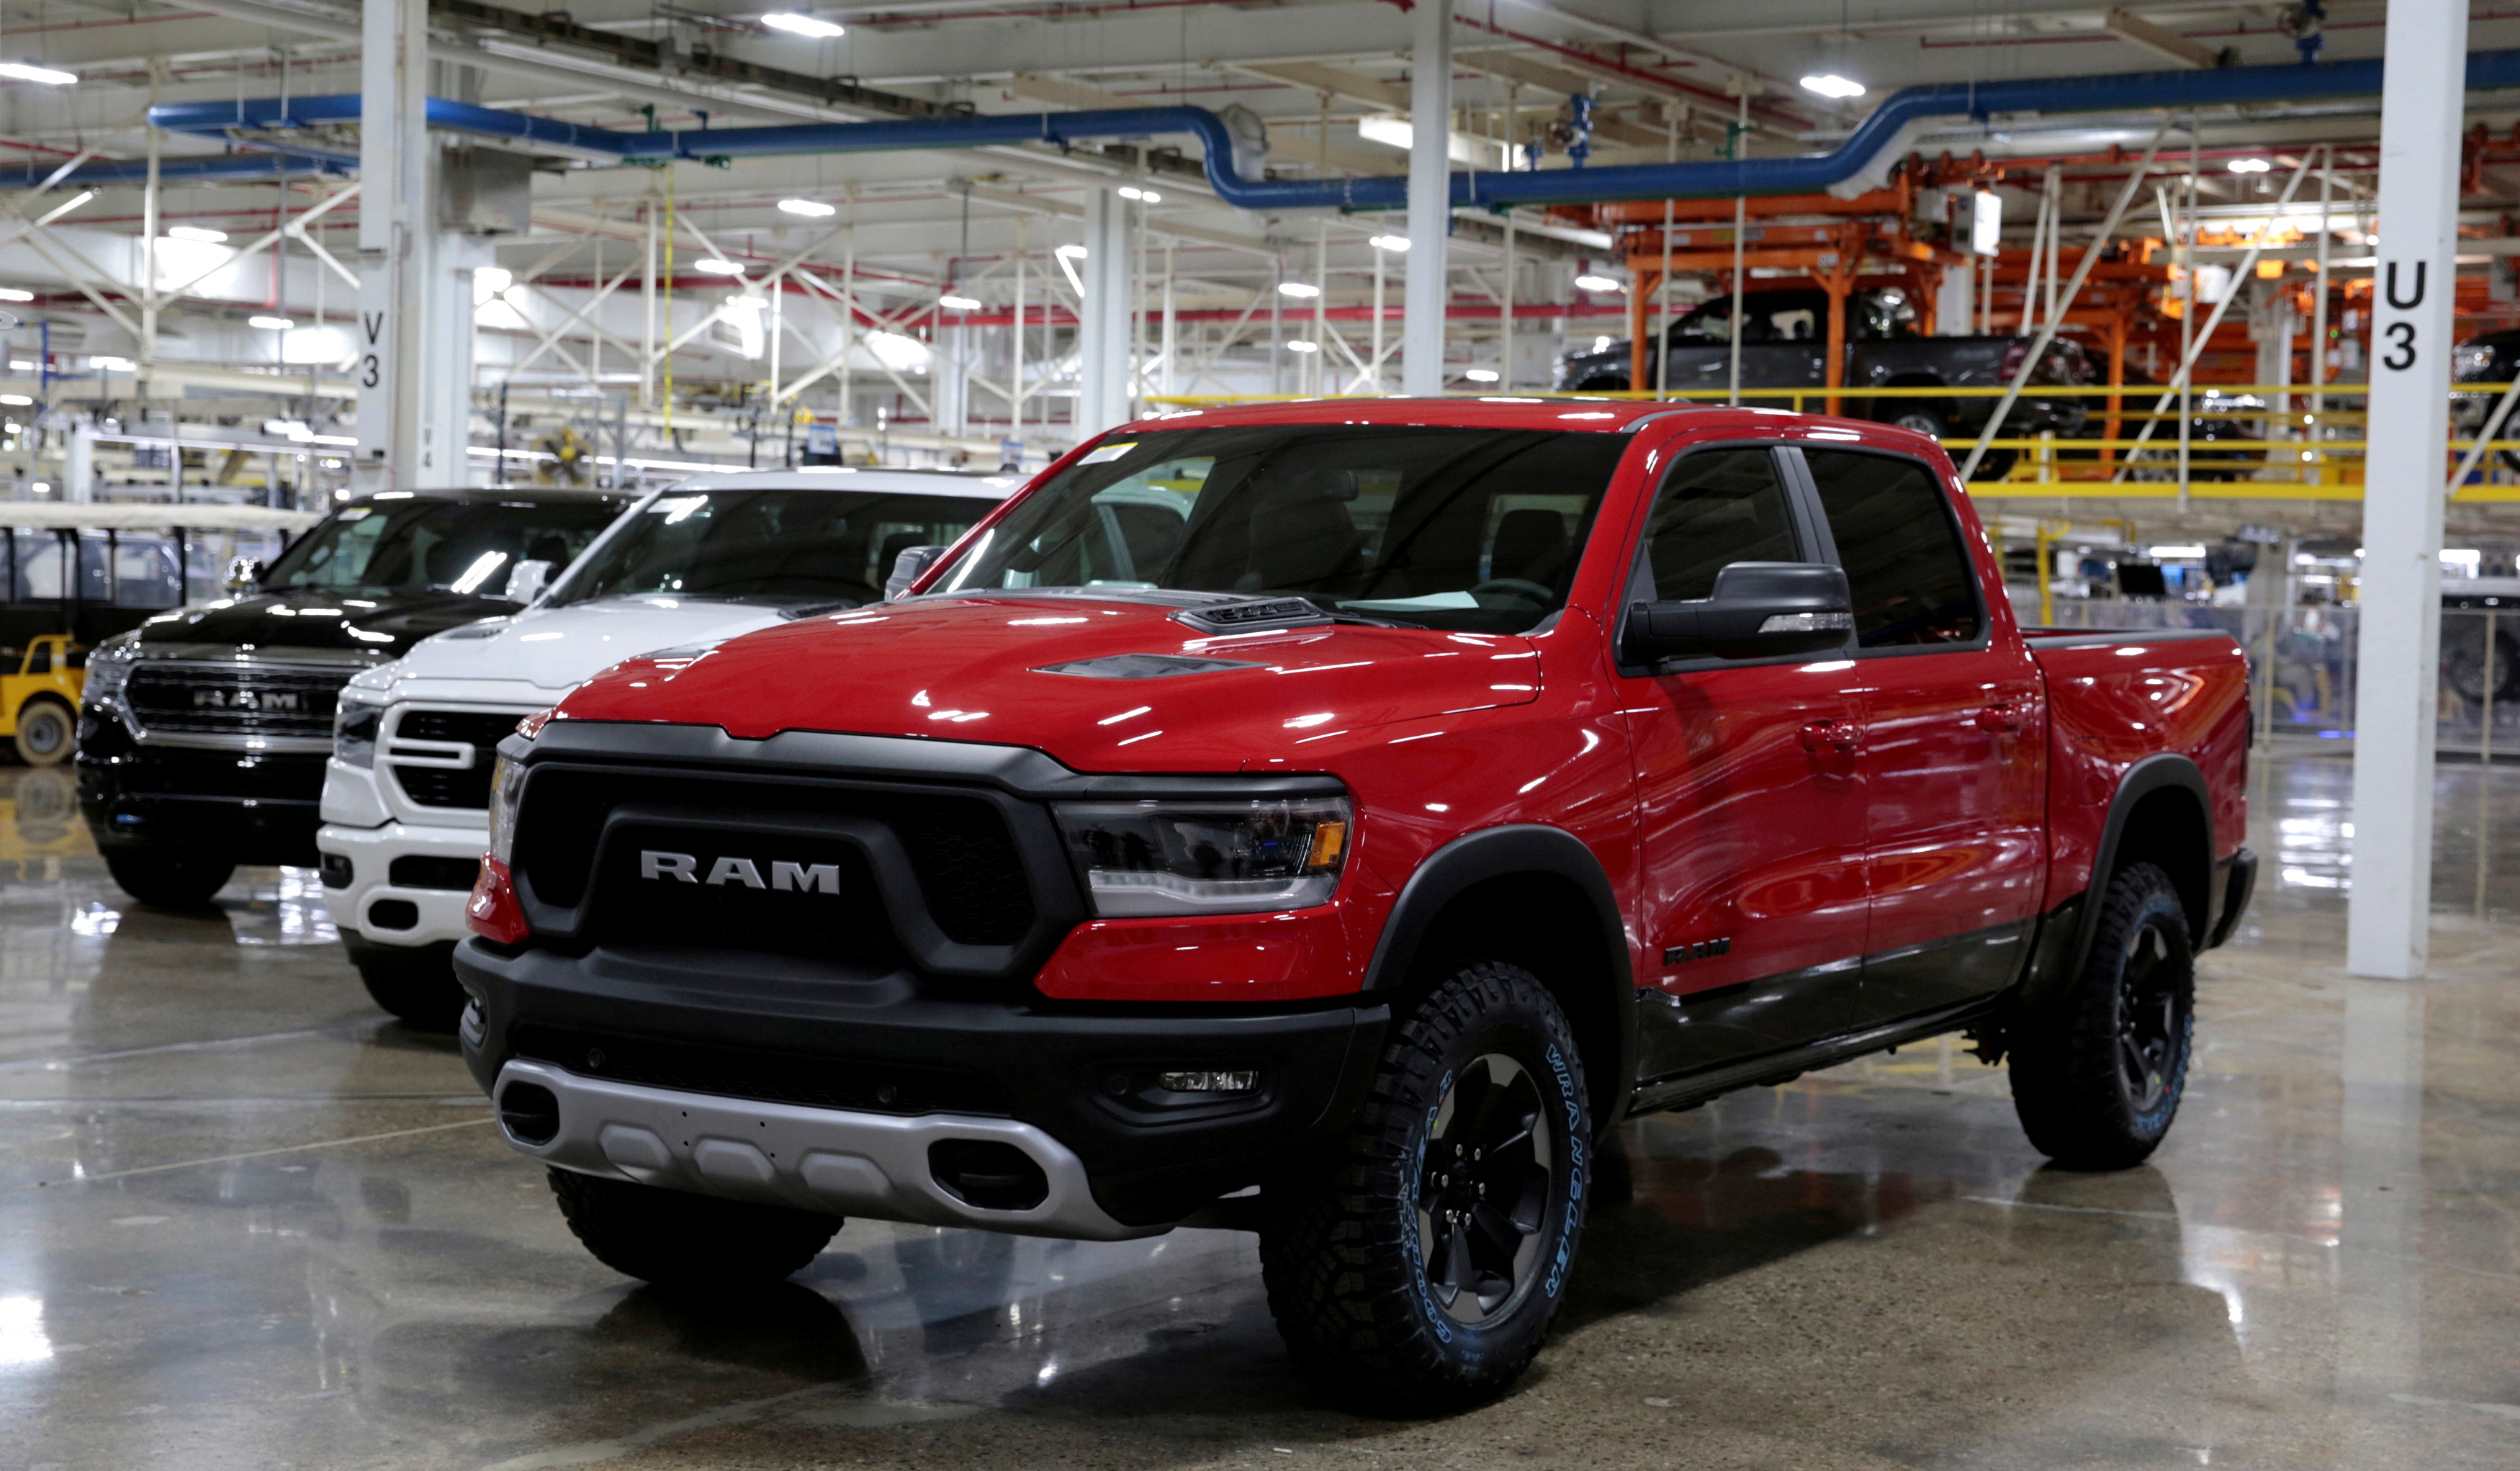 2019 Ram pickup trucks are on display at the Fiat Chrysler Automobiles (FCA) Sterling Heights Assembly Plant in Sterling Heights, Michigan, U.S., October 22, 2018. REUTERS/Rebecca Cook